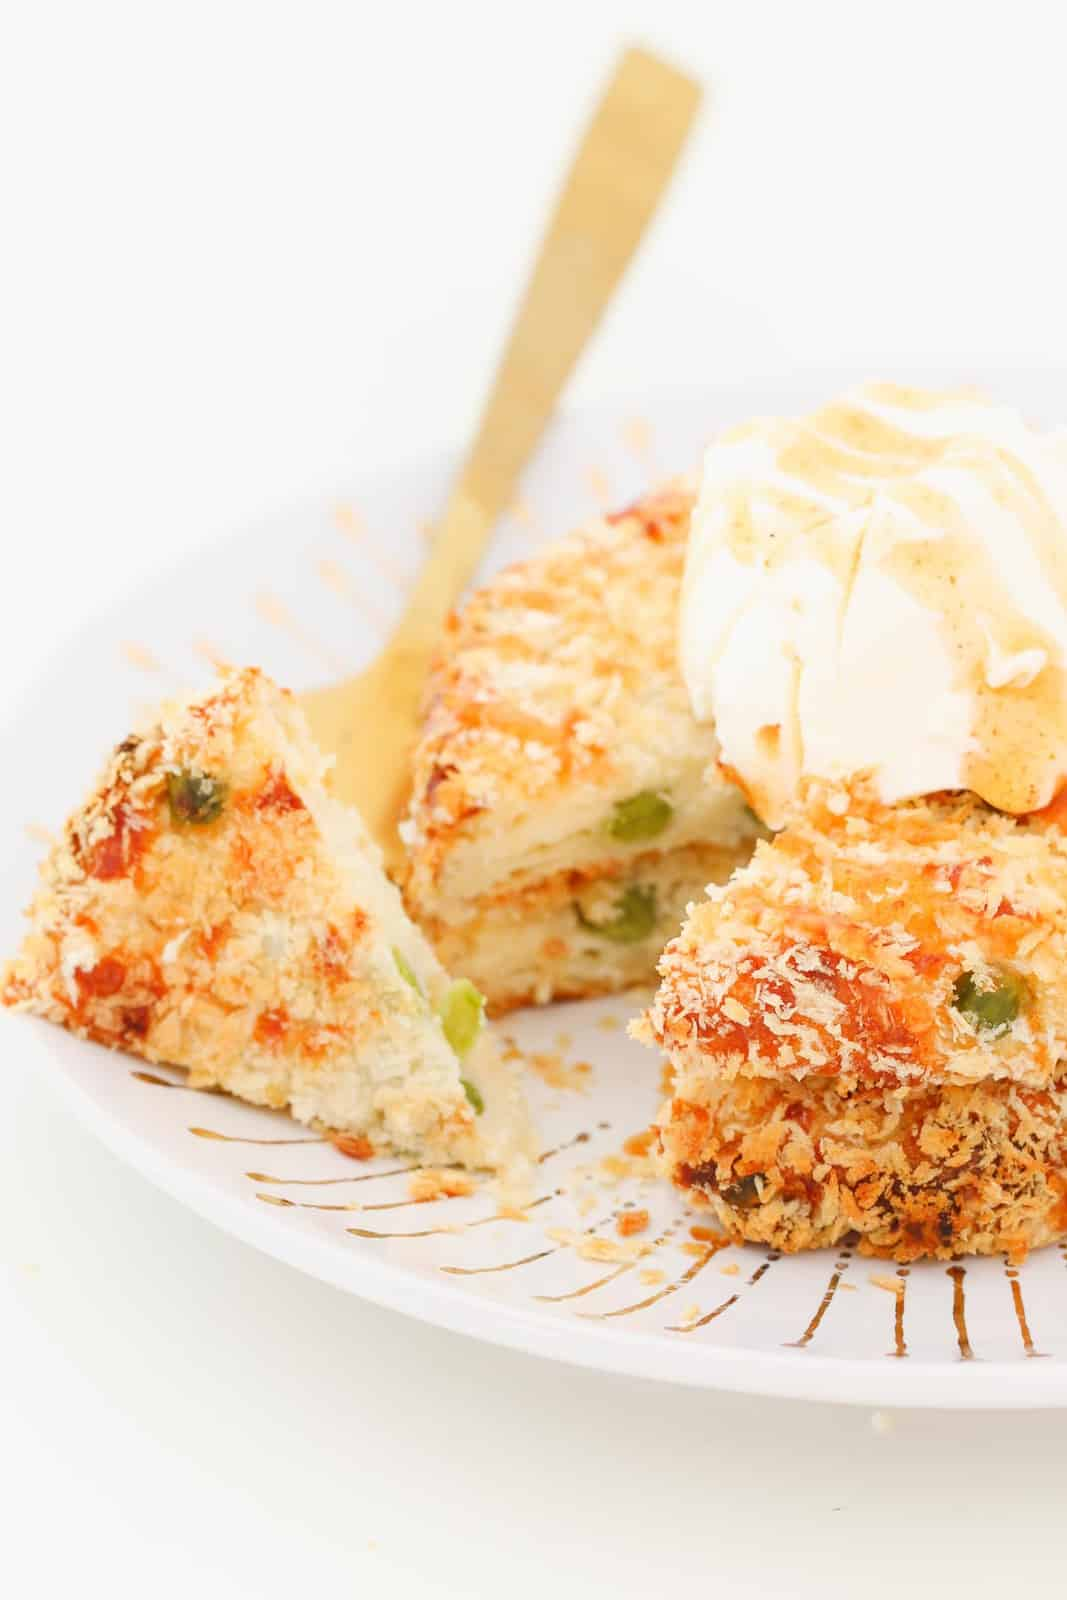 A gold fork with a piece of mashed potato cake coated in panko crumbs on it with a doloop of sour cream on the rest of the crispy potato cake.